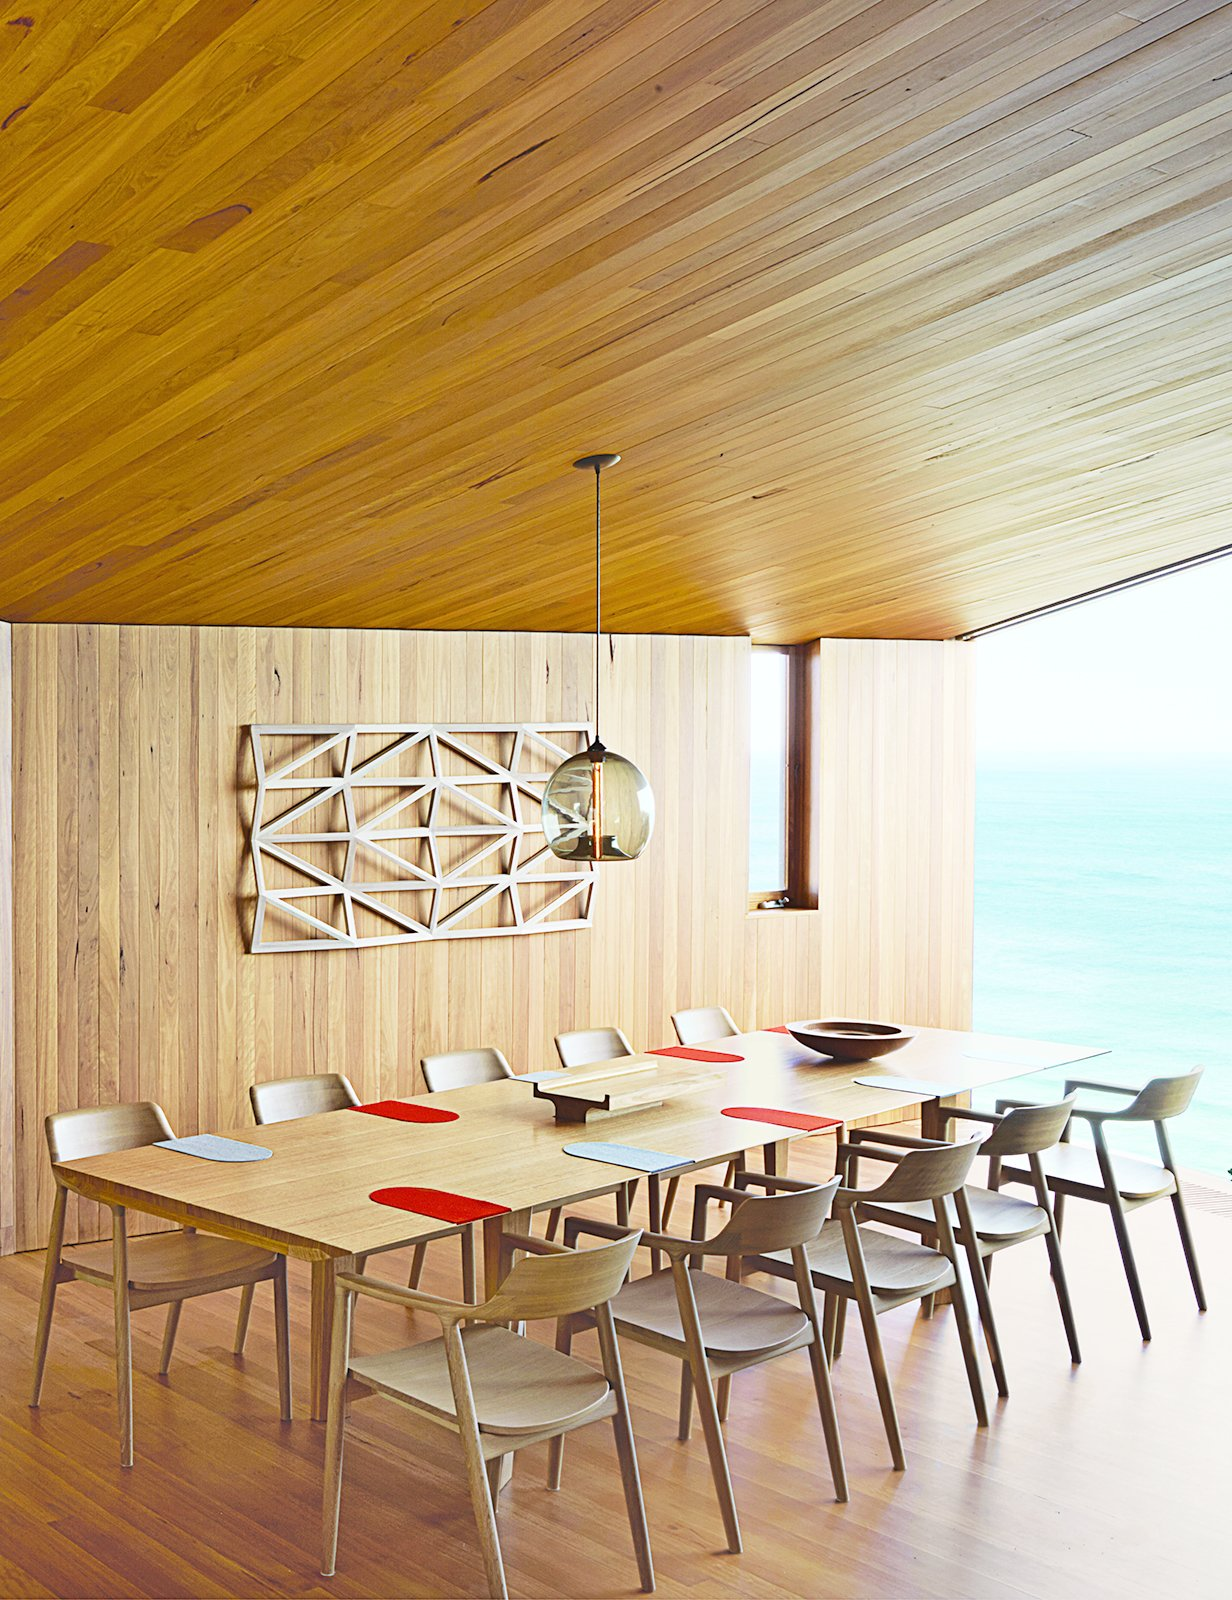 Wardle's firm also designed the dining table, where up to ten guests can gaze out at the Southern Ocean. The solid-oak Hiroshima chairs are designed by Maruni. Tagged: Dining Room, Chair, Pendant Lighting, Table, and Medium Hardwood Floor.  Photo 24 of 41 in 50 Dashing Dining Rooms from A Eucalyptus-Lined Oceanfront Home in Australia